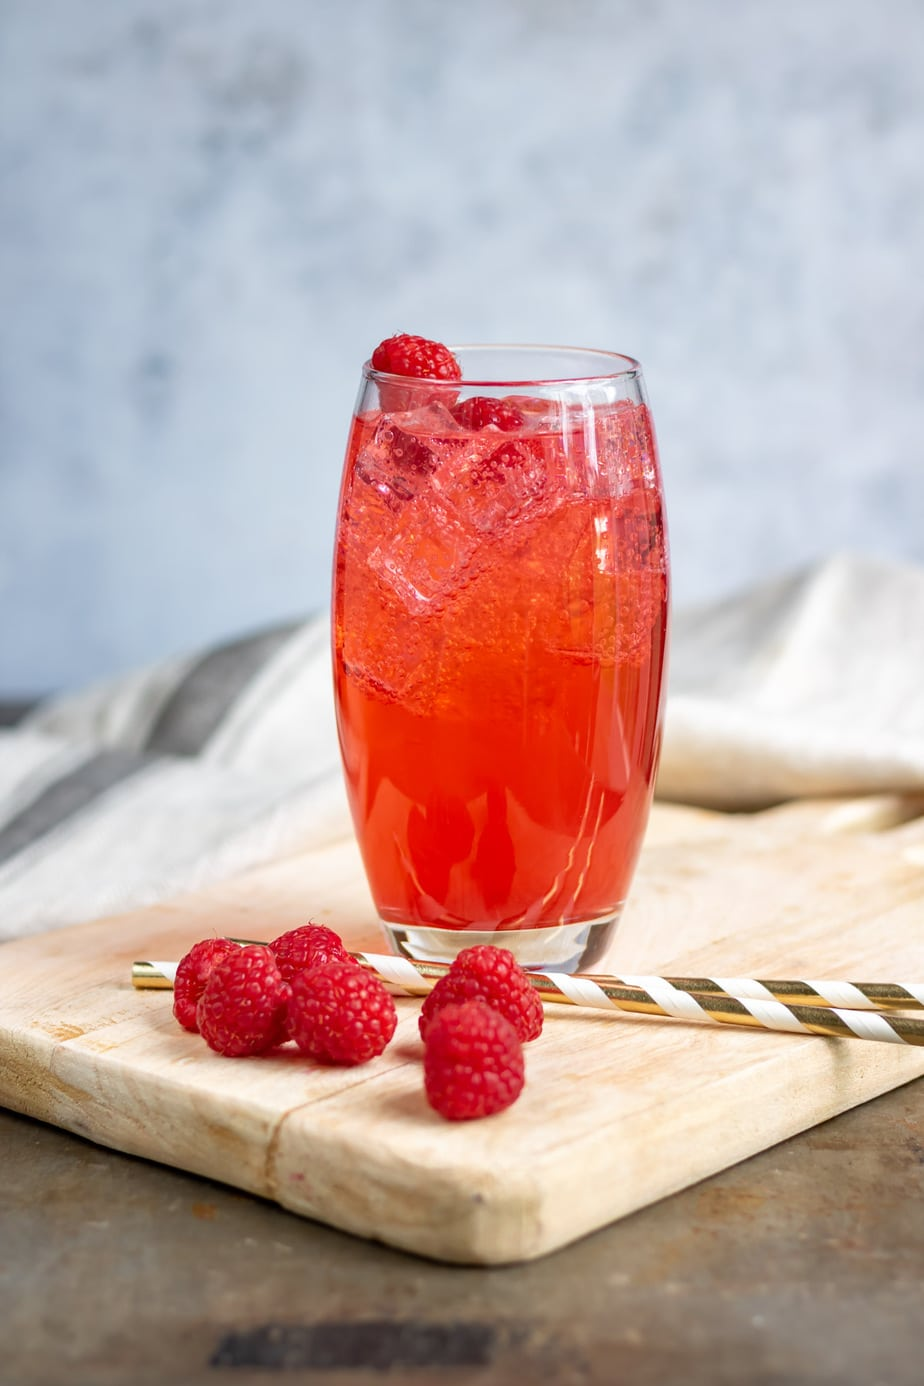 Glass of raspberry soda with raspberries in it.